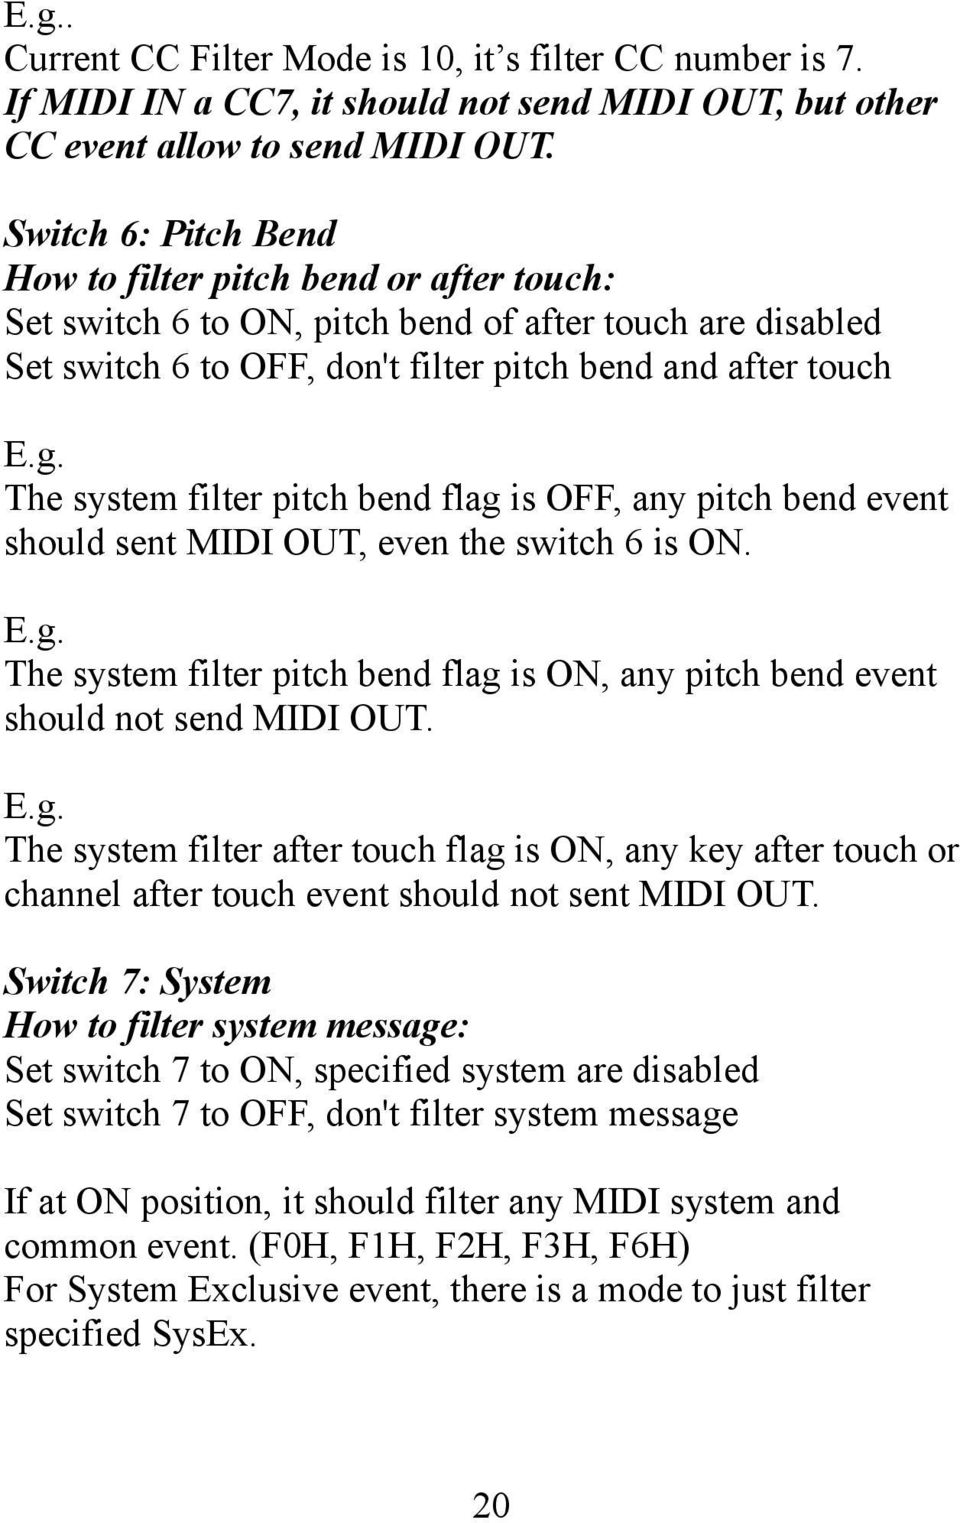 The system filter pitch bend flag is OFF, any pitch bend event should sent MIDI OUT, even the switch 6 is ON. E.g. The system filter pitch bend flag is ON, any pitch bend event should not send MIDI OUT.